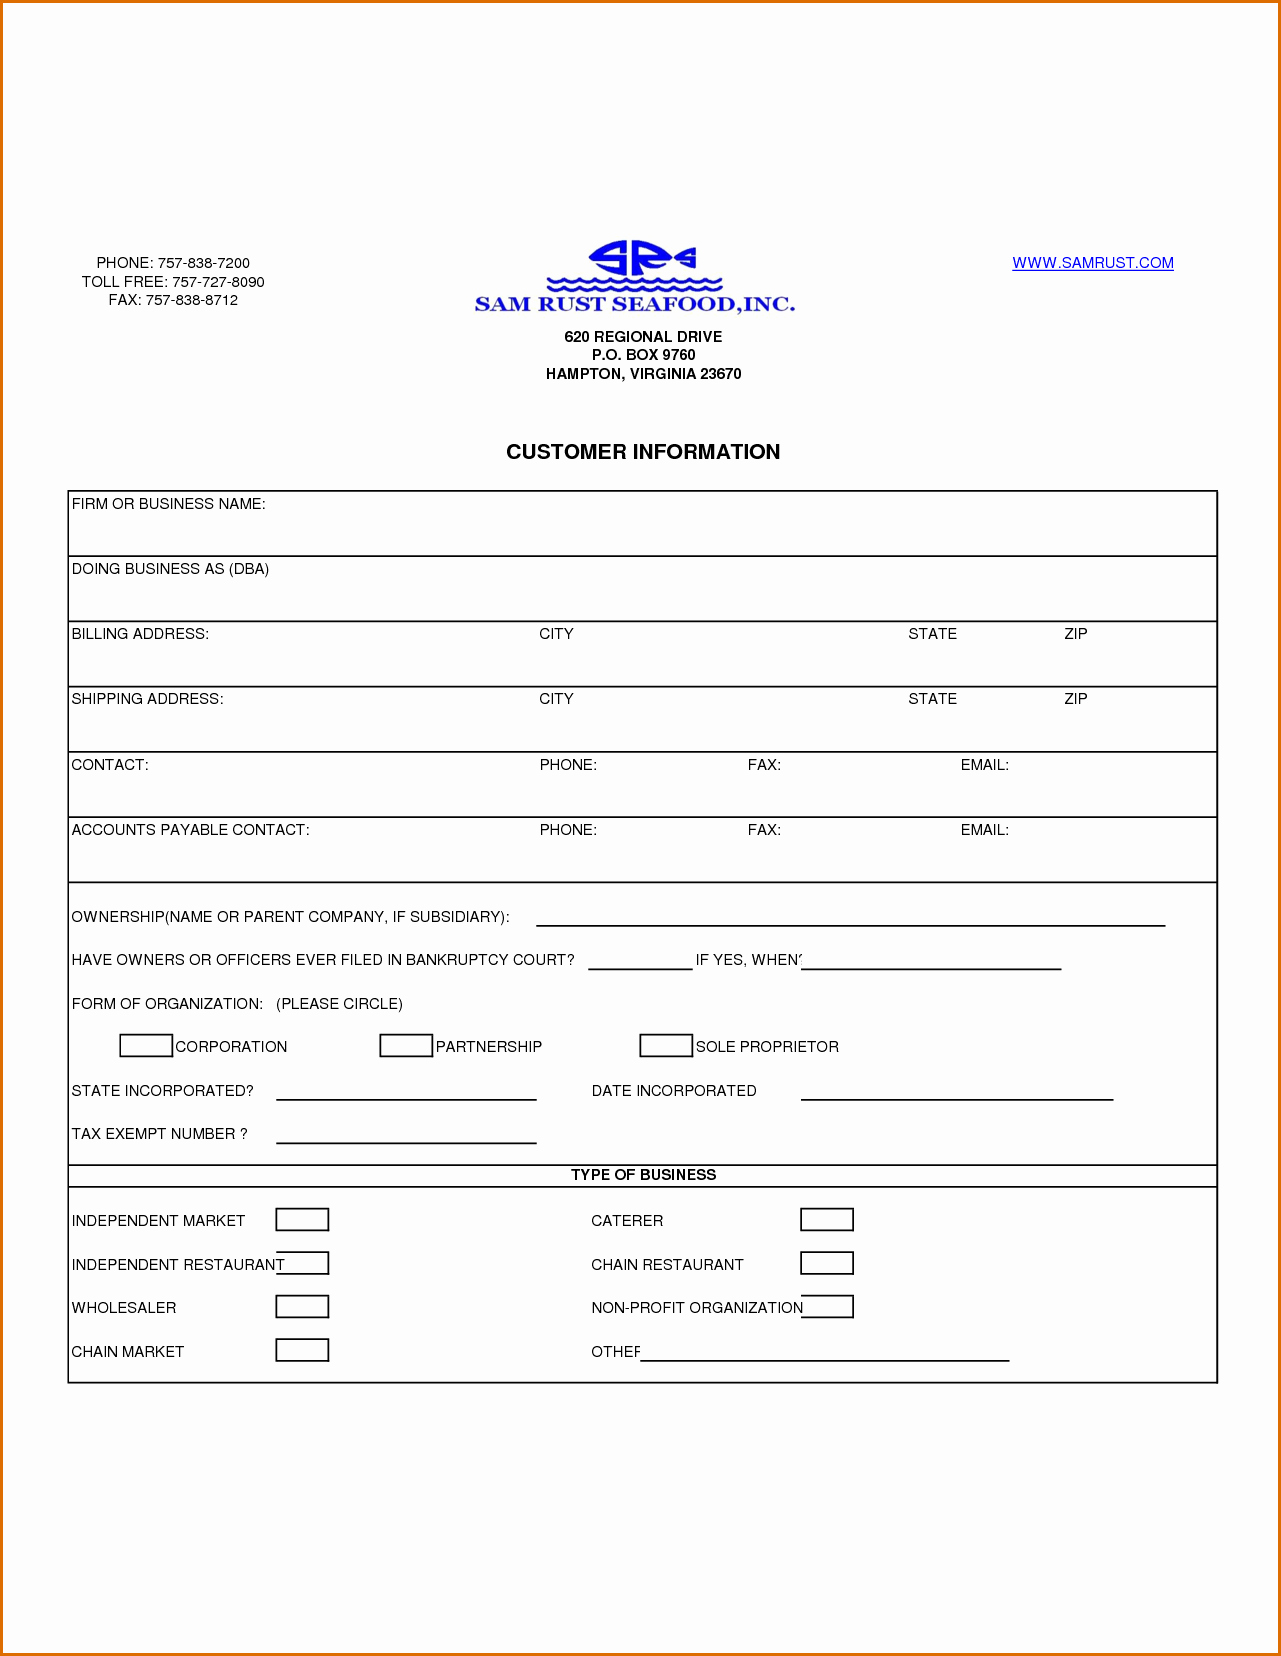 Customer Contact Information form Template Luxury 13 Customer Information form Template